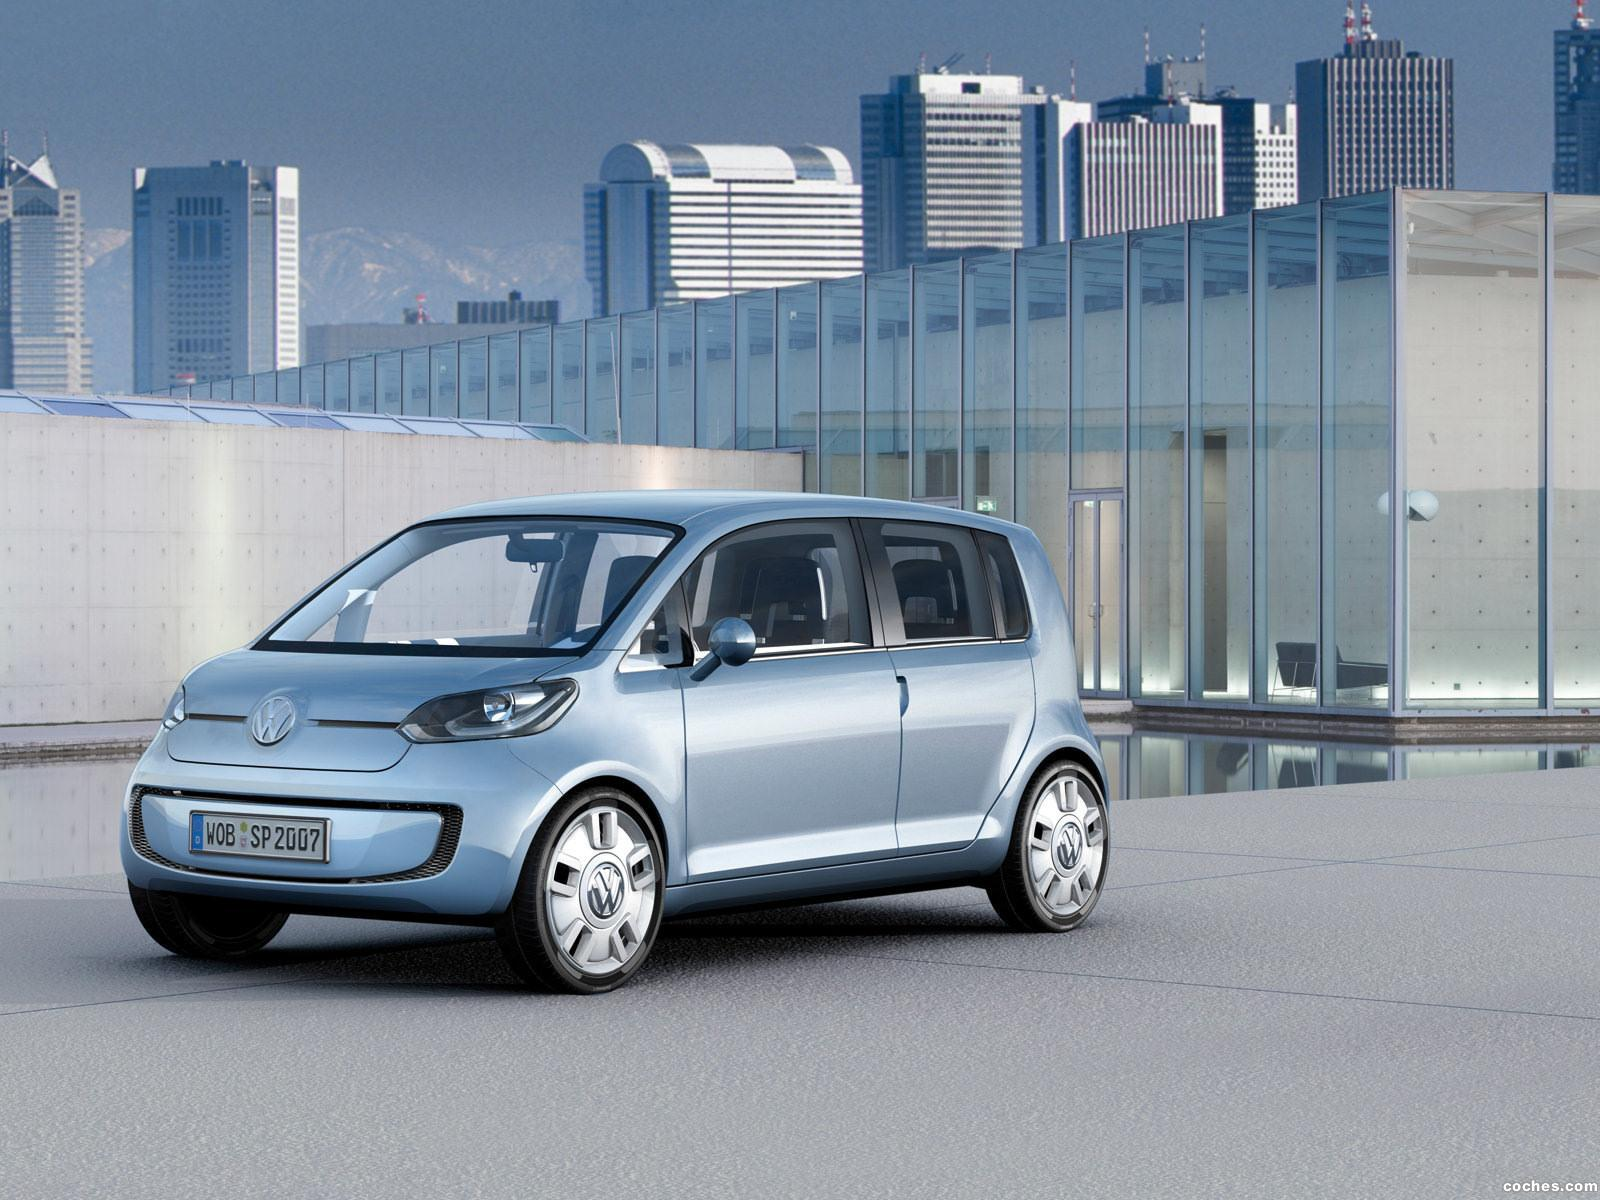 Foto 0 de Volkswagen Space UP Concept 2007